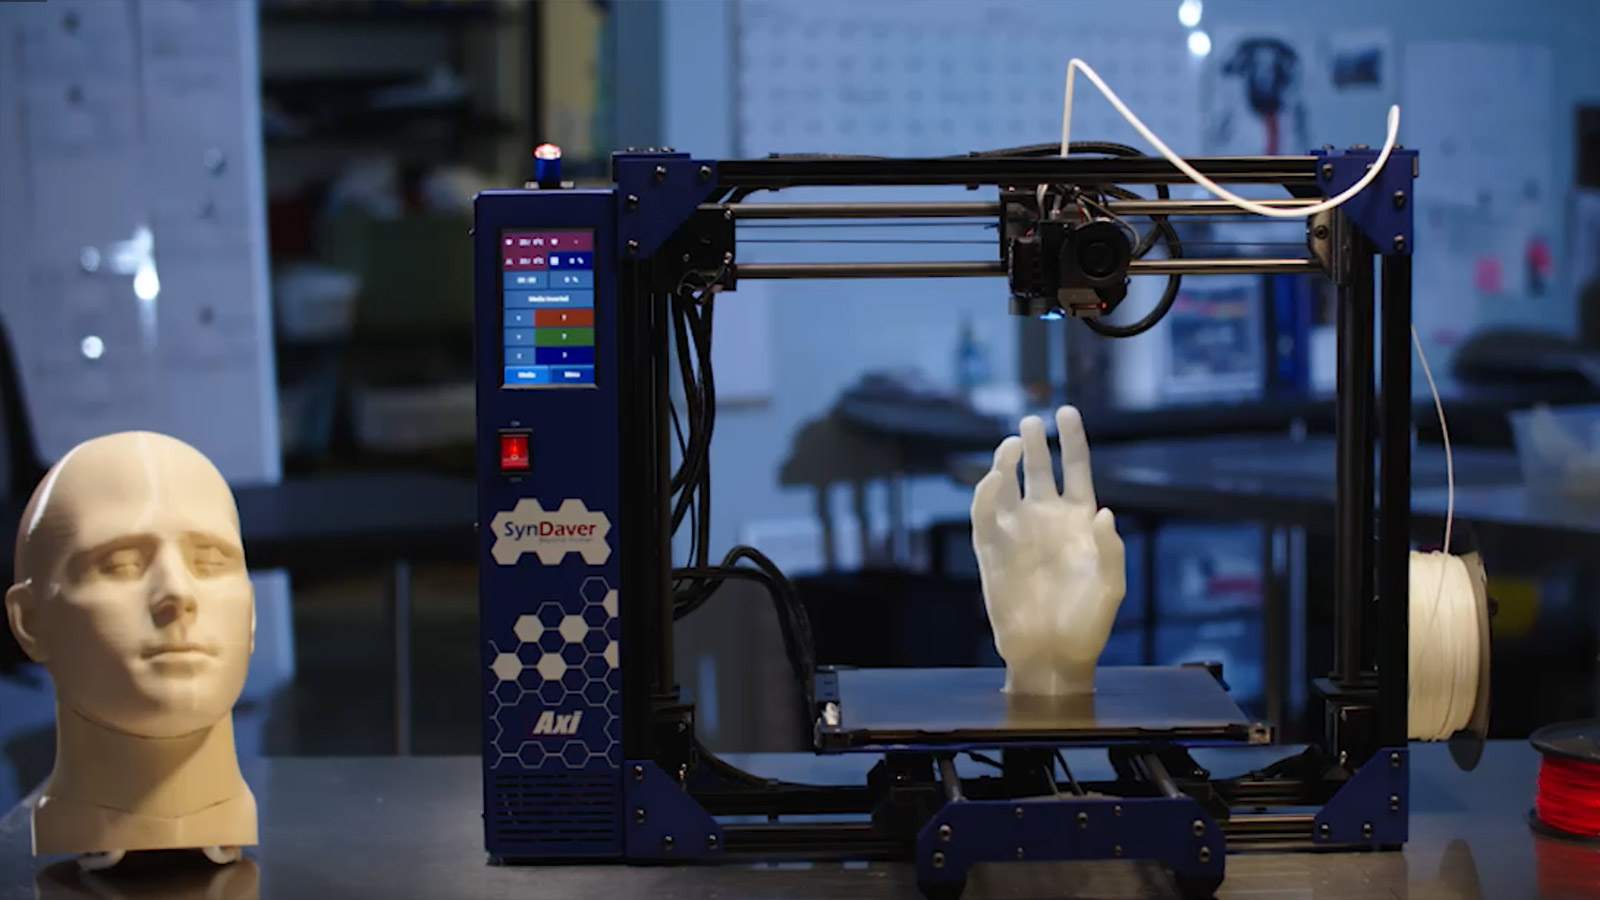 Syndaver launches its first 3D printer, the SynDaver Axi